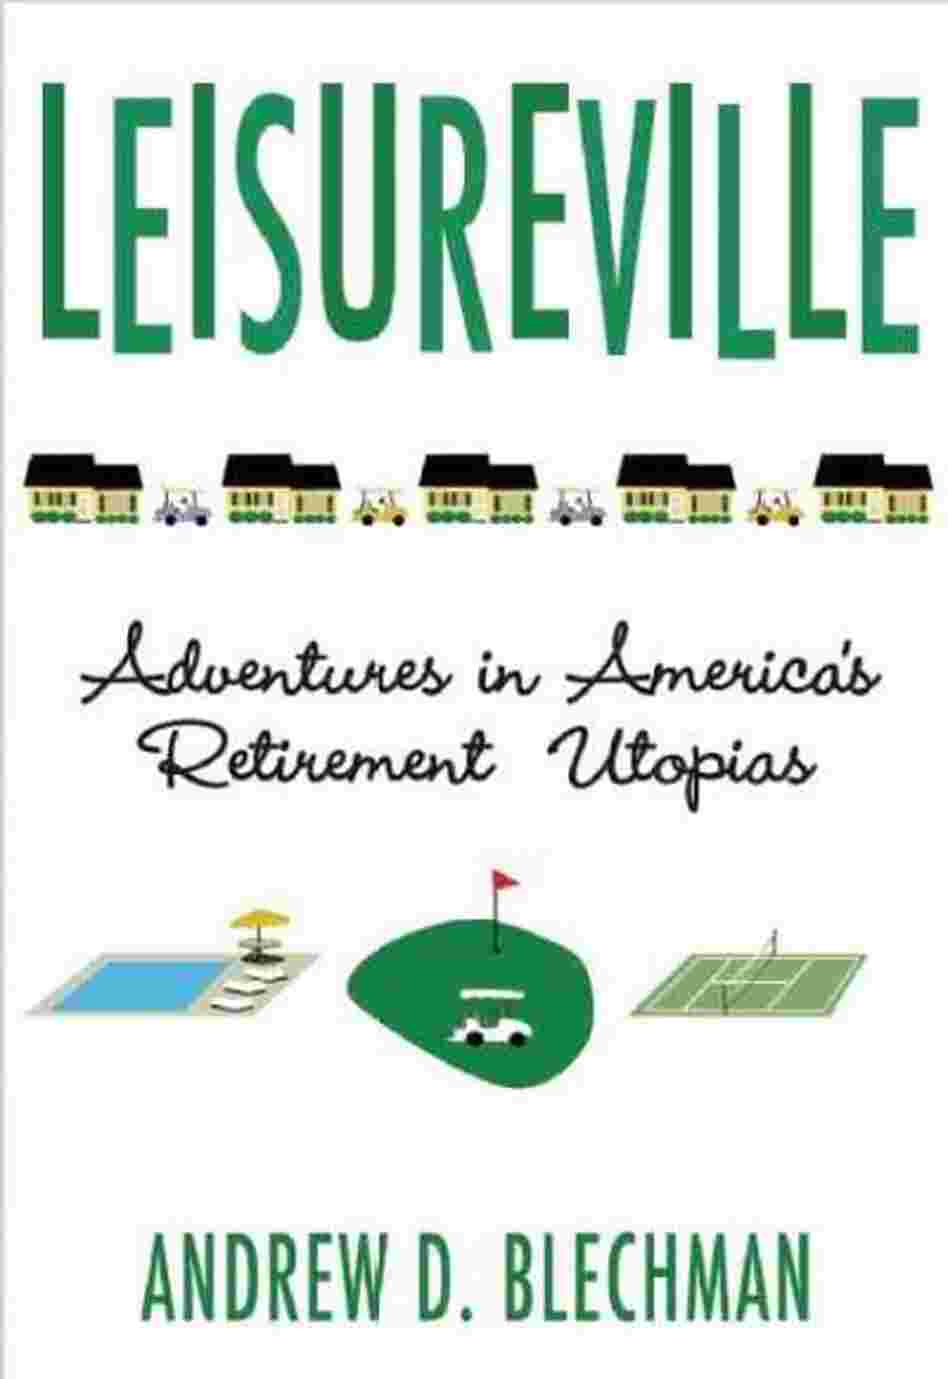 Leisureville